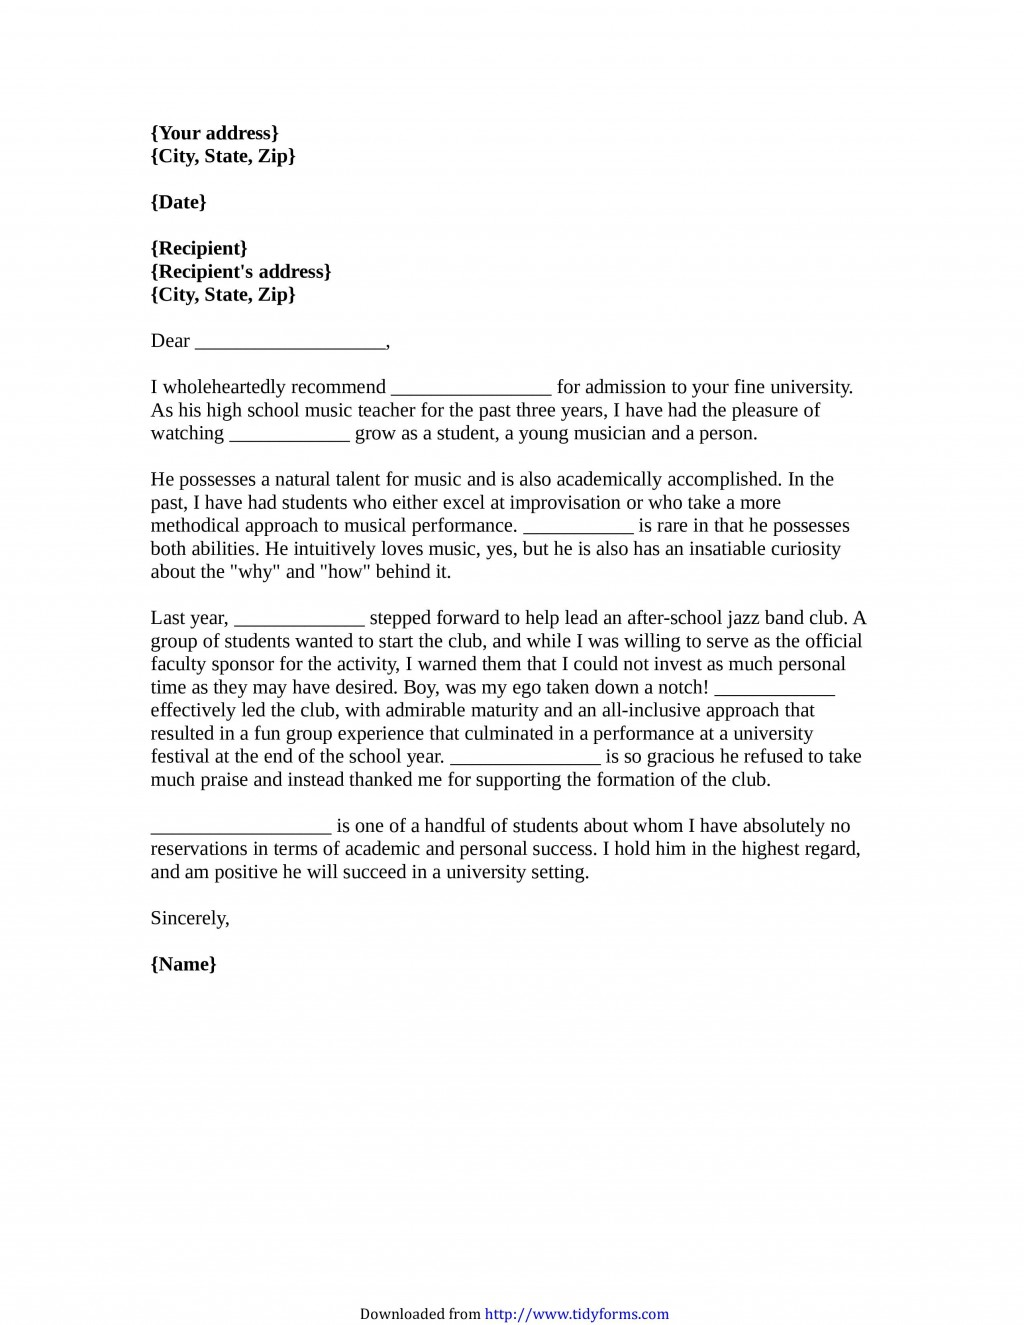 Letter Of Recommendation For A College Student from www.addictionary.org